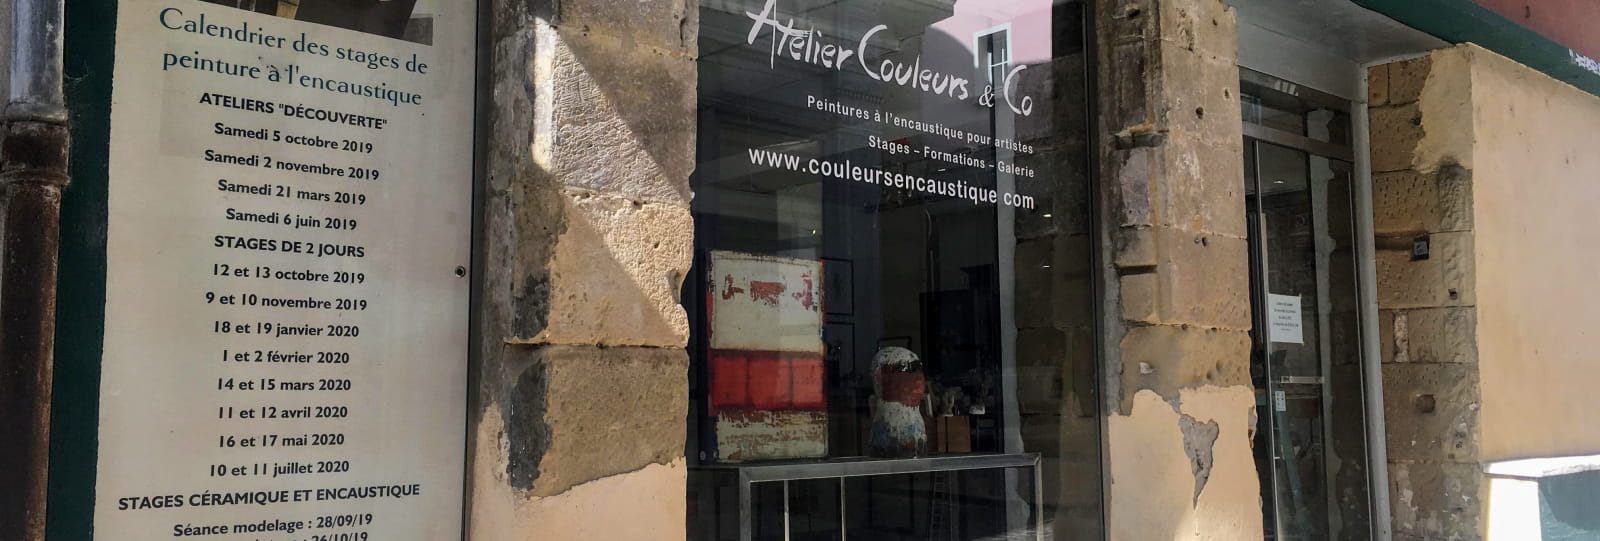 Atelier Couleurs & Co